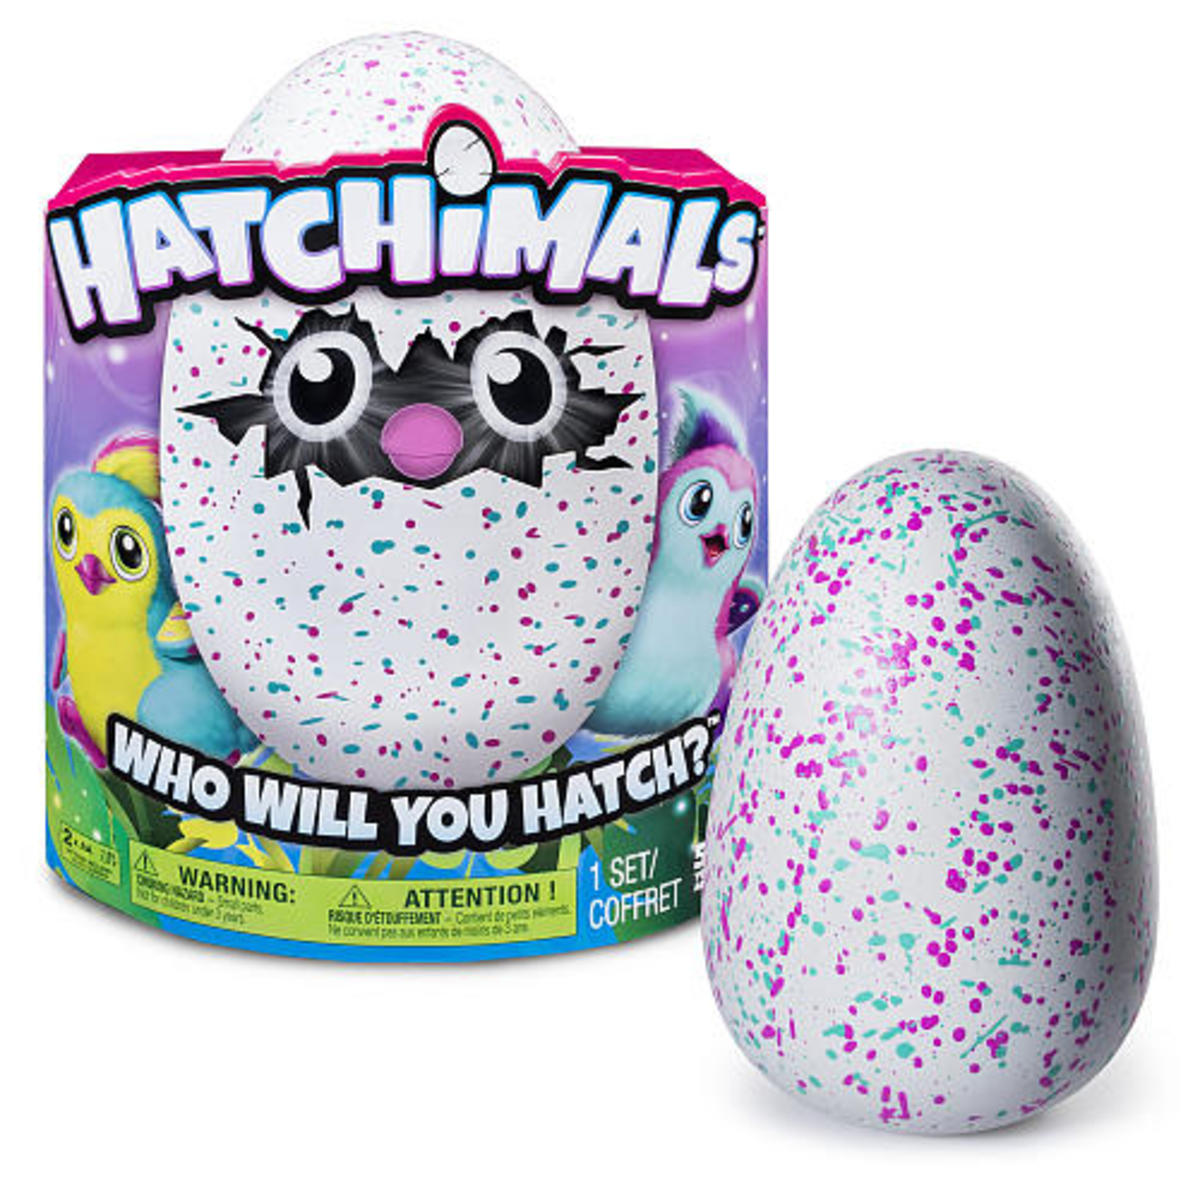 Your Hatchimal arrives as an egg ... but then something magical and amazing happens